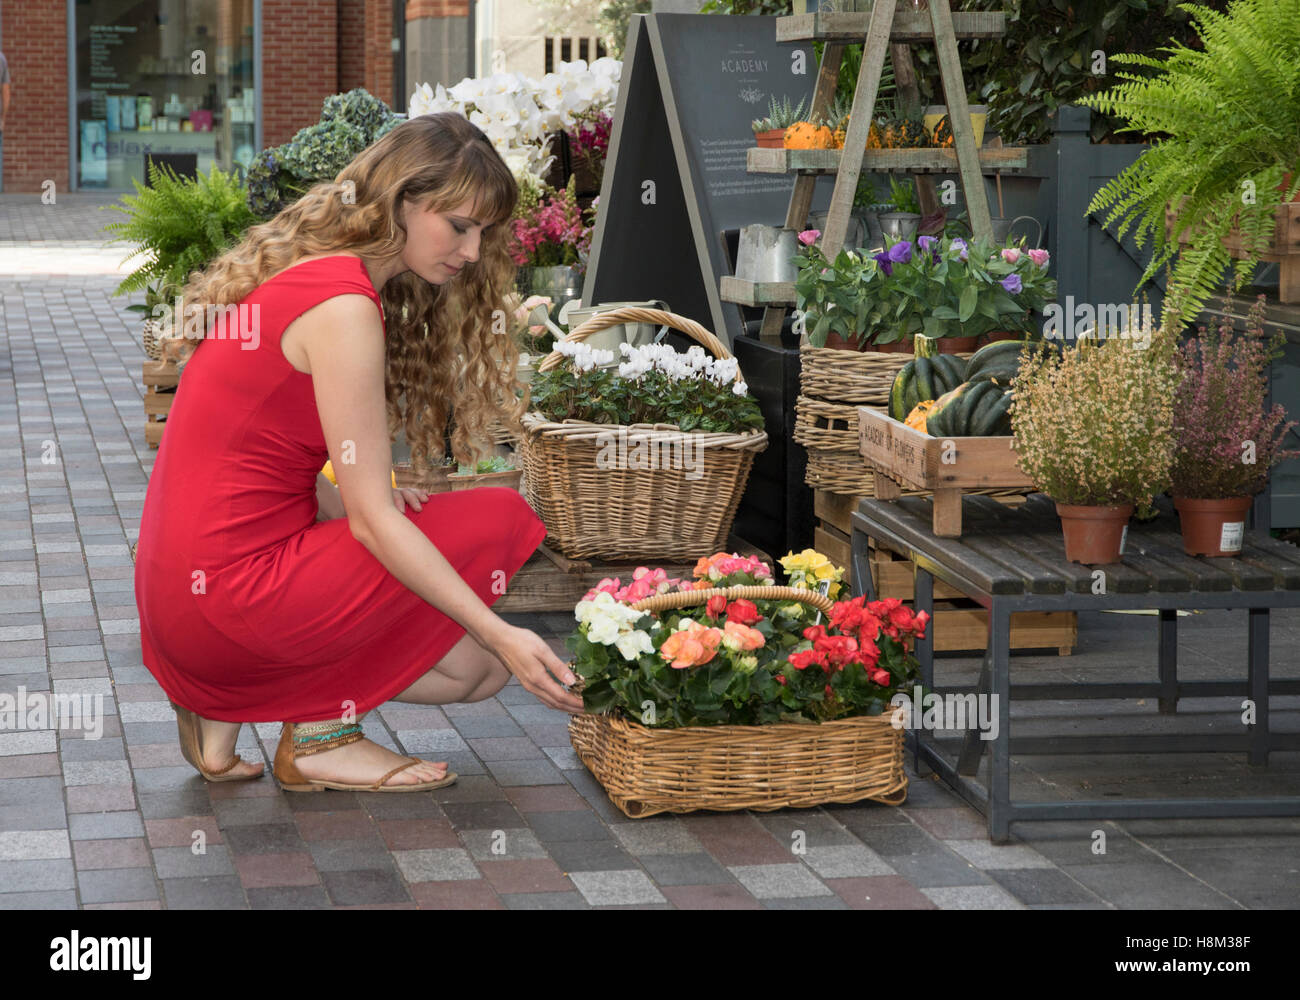 Girl buying flowers from a flower stall in Seven Dials, London Stock Photo